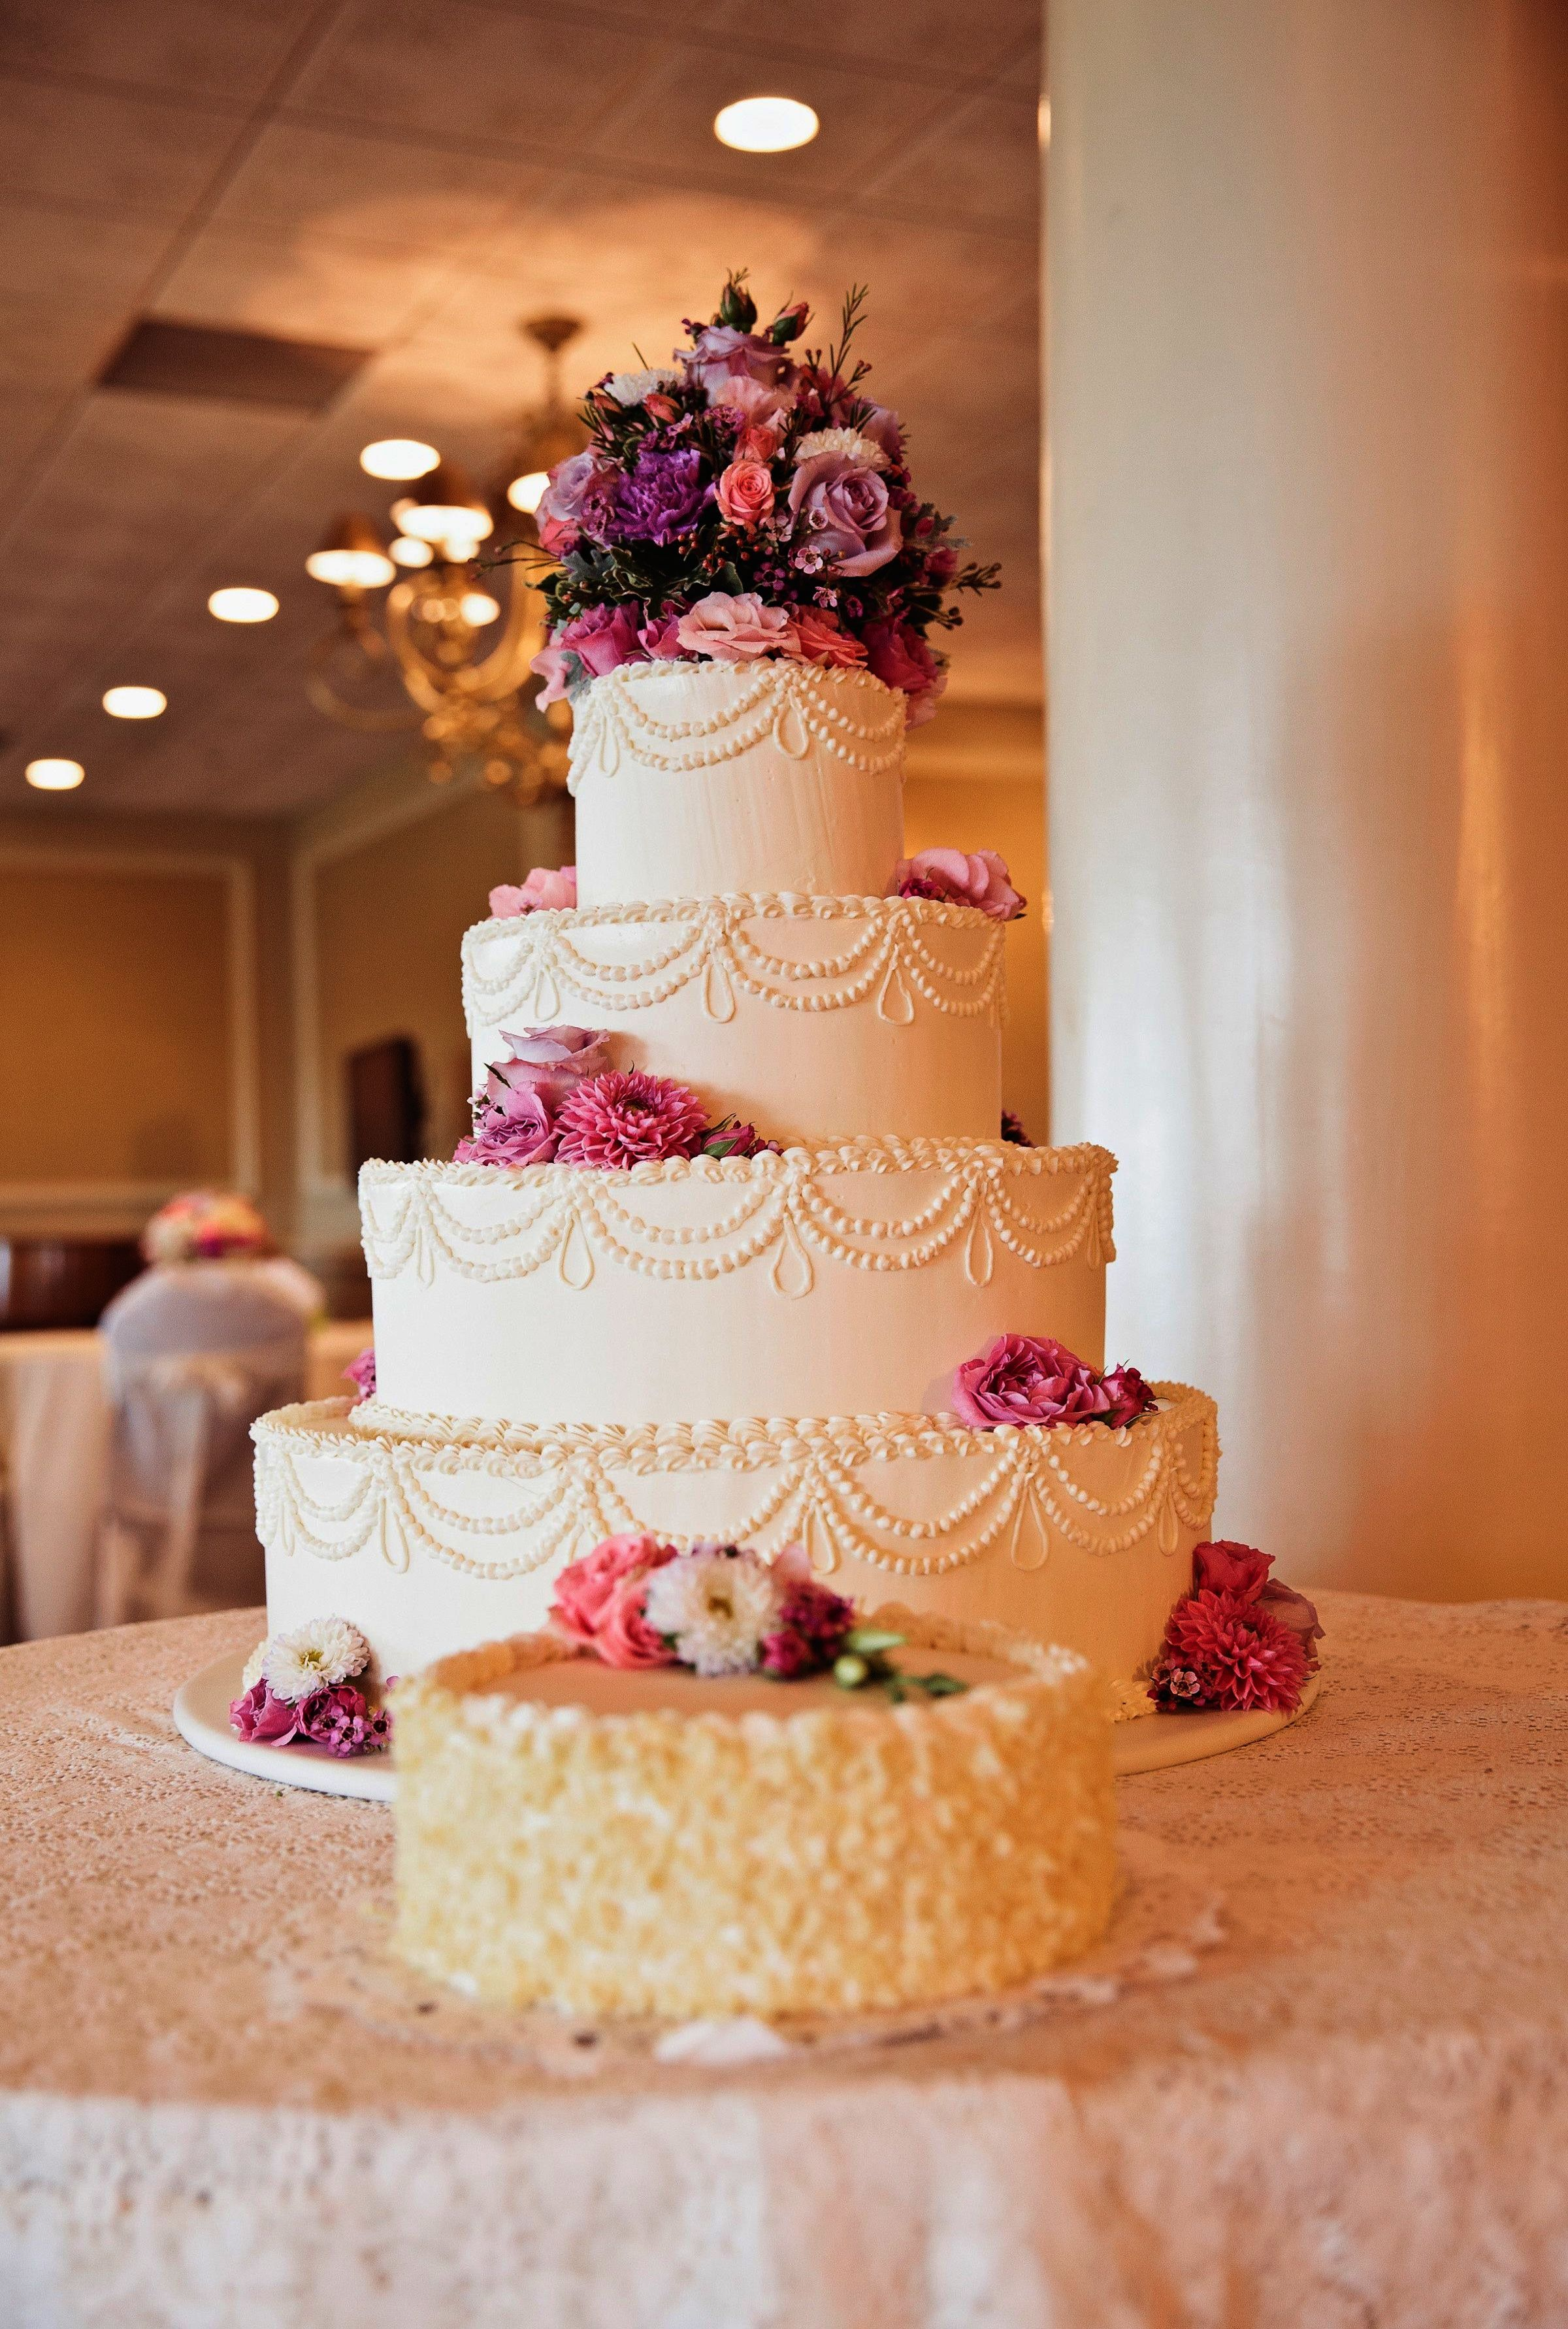 Barn wedding venues near joplin mo  Beautiful Homemade Wedding Cakes Wedding Cakes Joplin Mo  Wedding